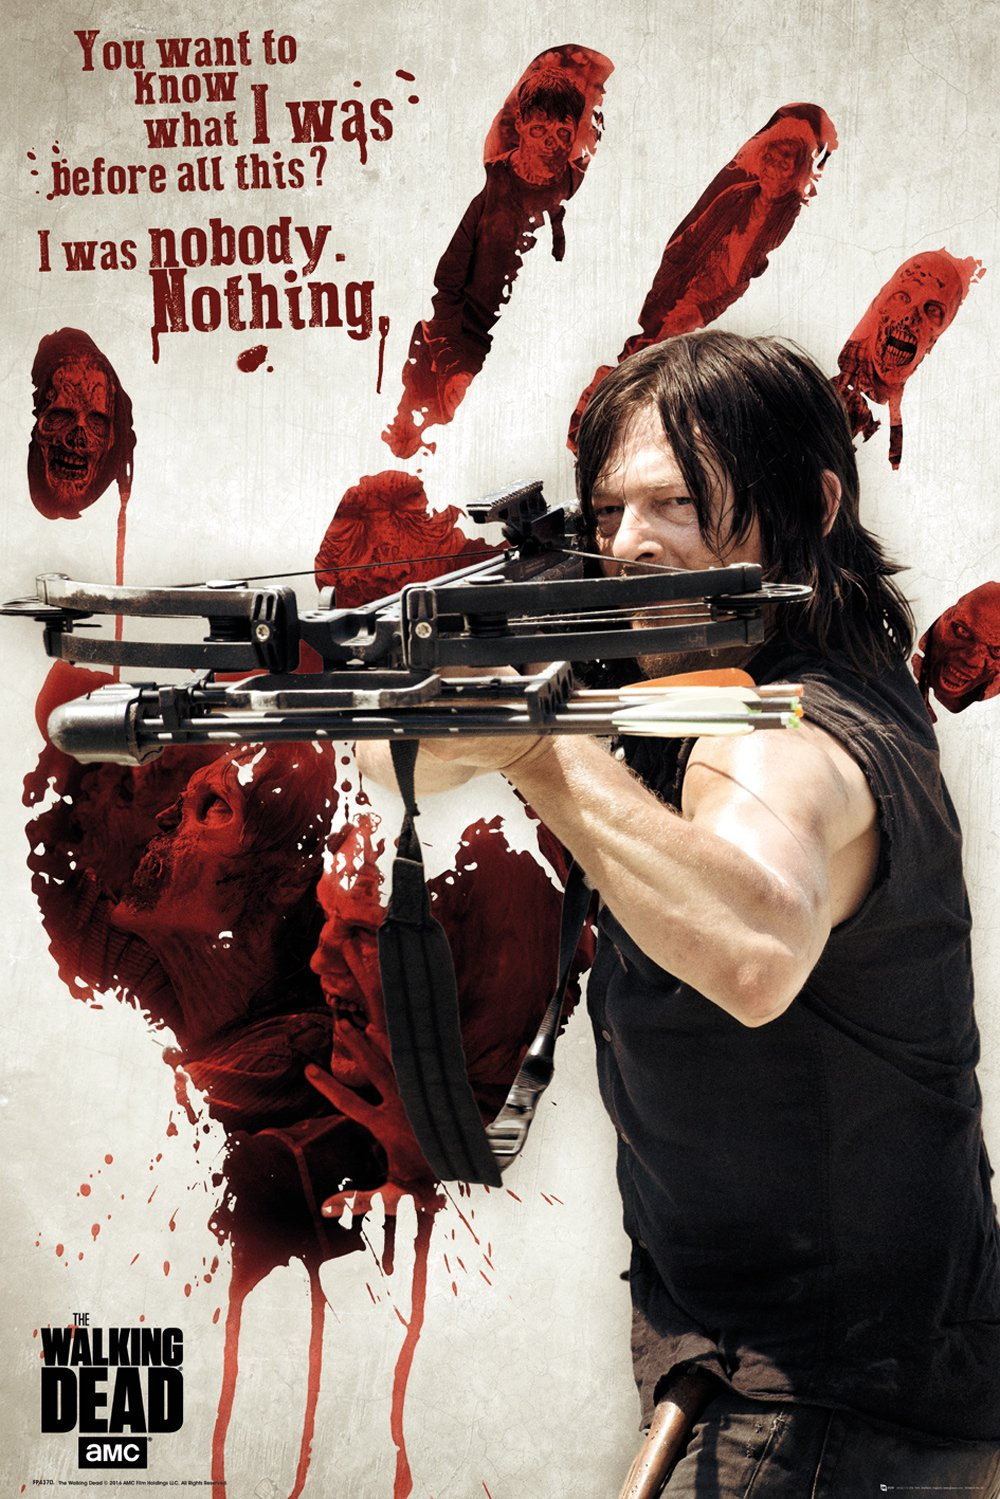 Walking Dead - Bloody Hand Poster - egoamo.co.za